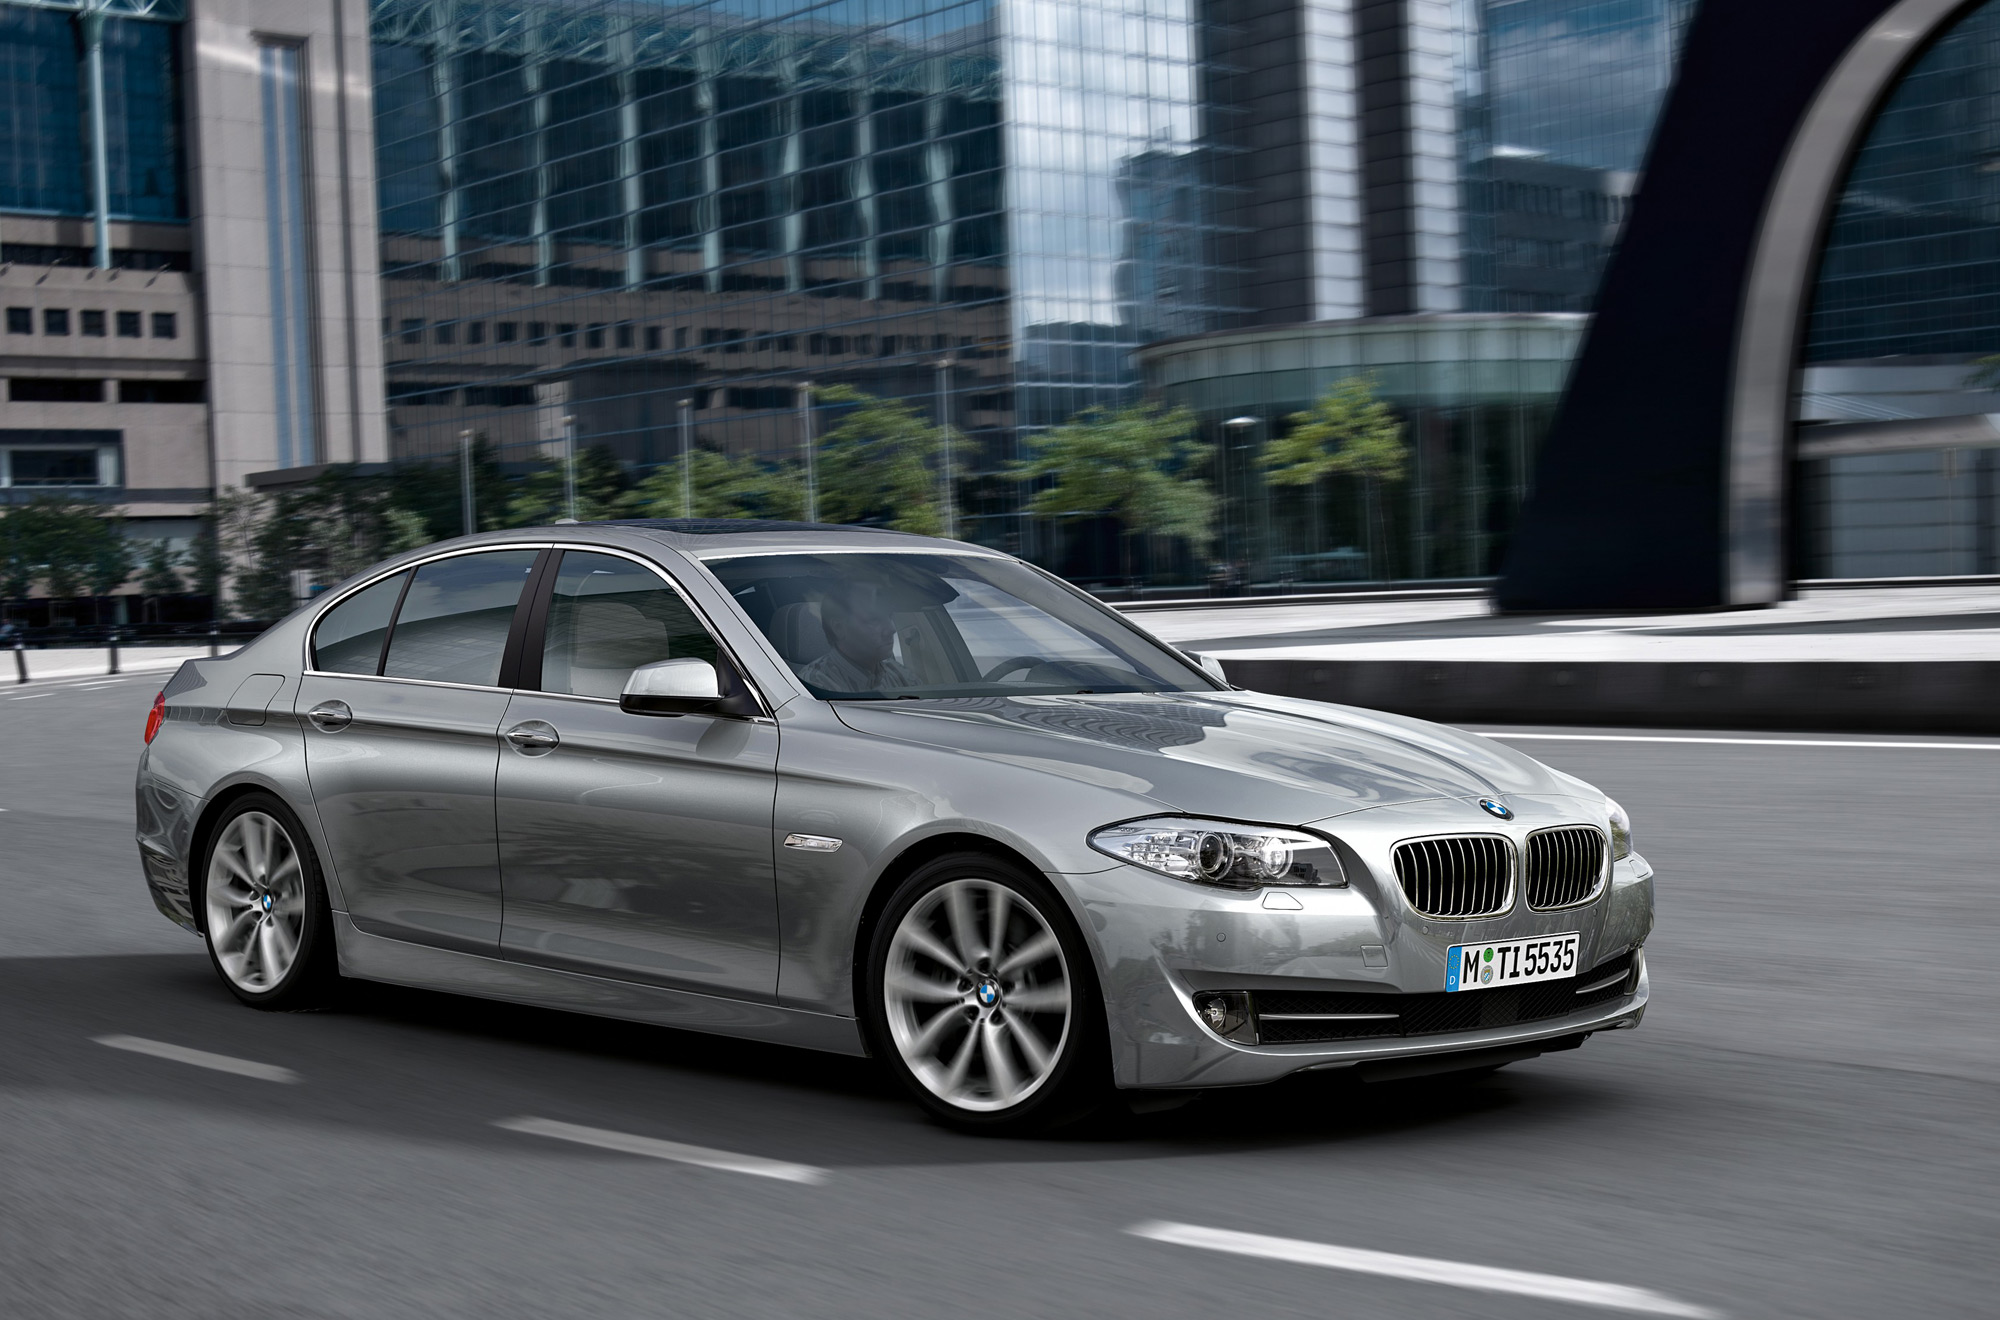 Delightful BMW 5 Series Sedan